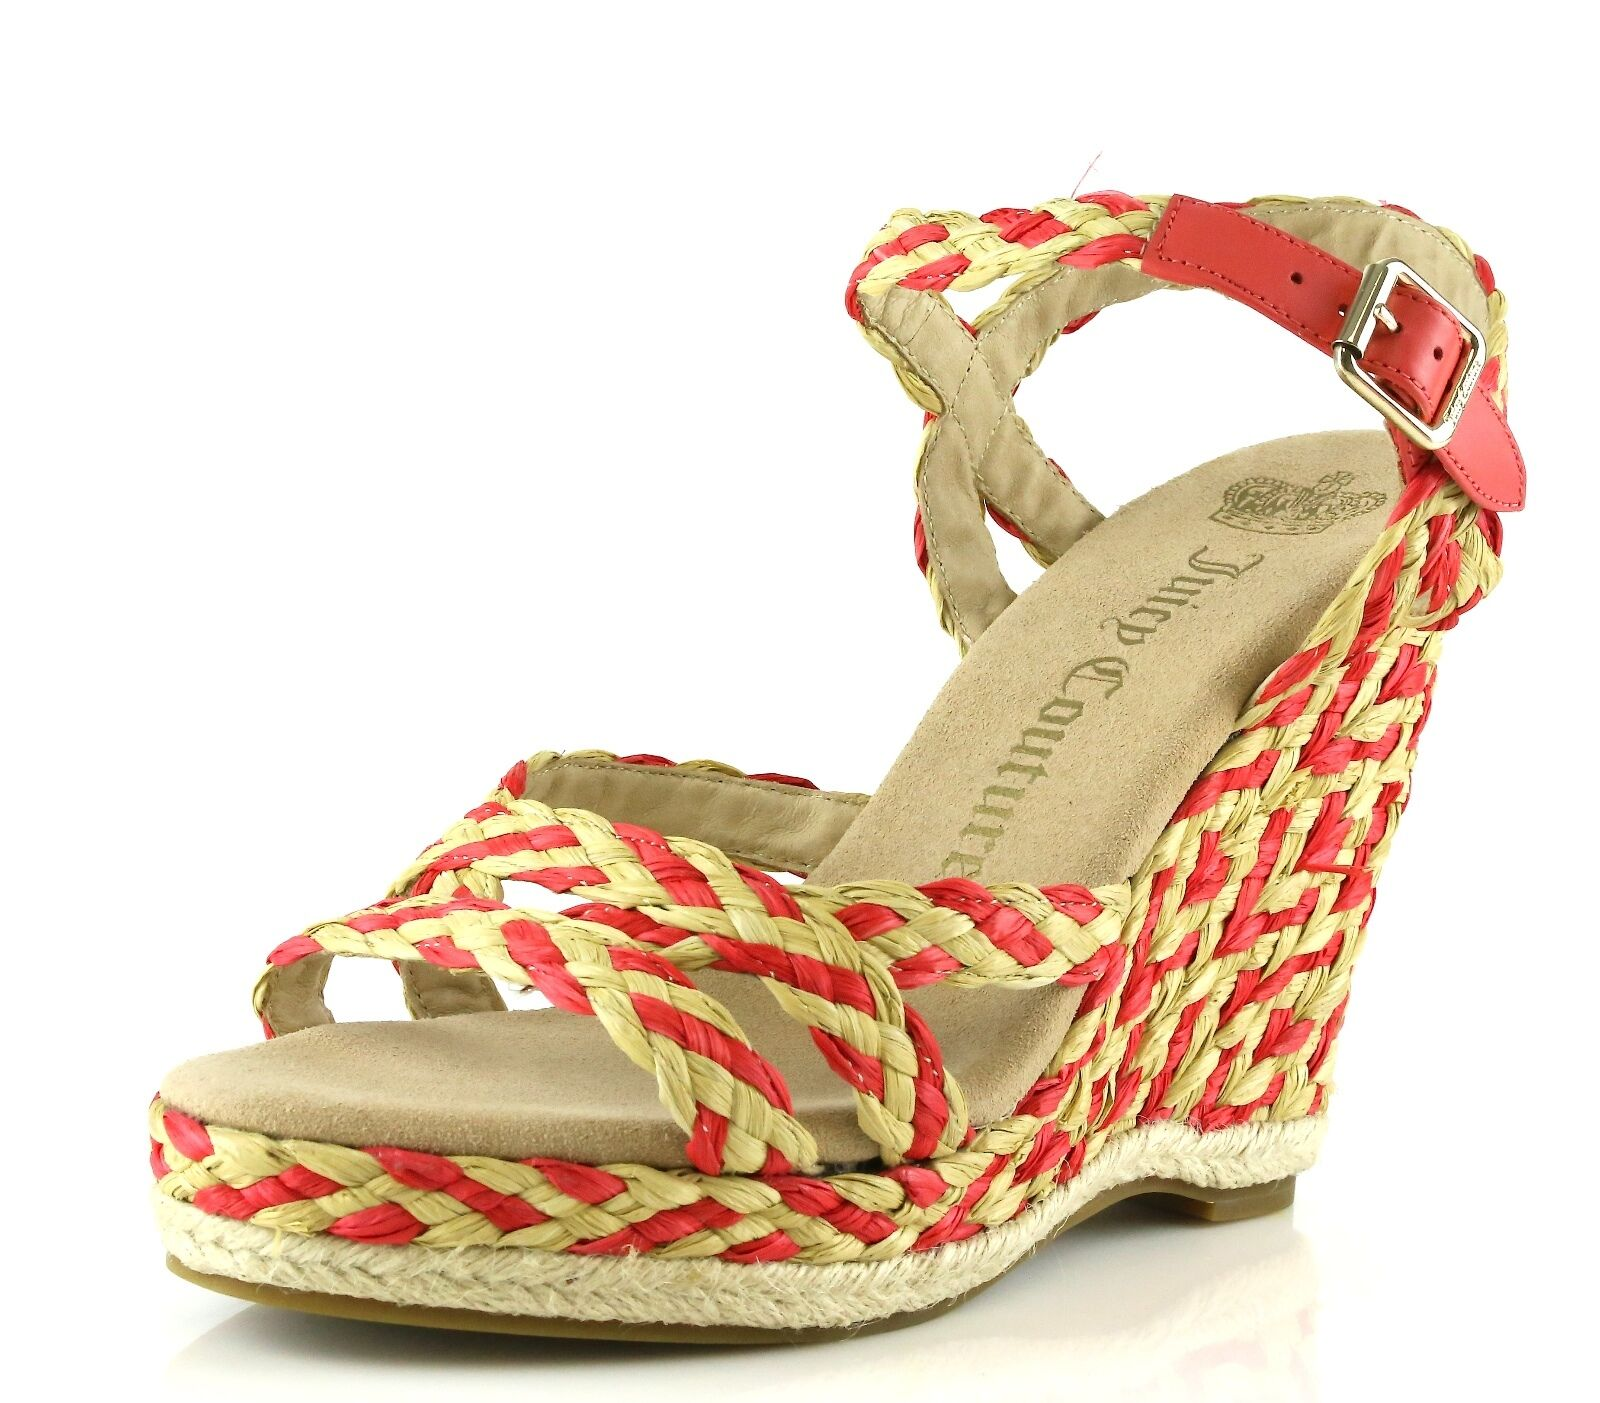 Juicy Couture FERNANDA Coral Wedge Sandals 7027 Size 7 M NEW!